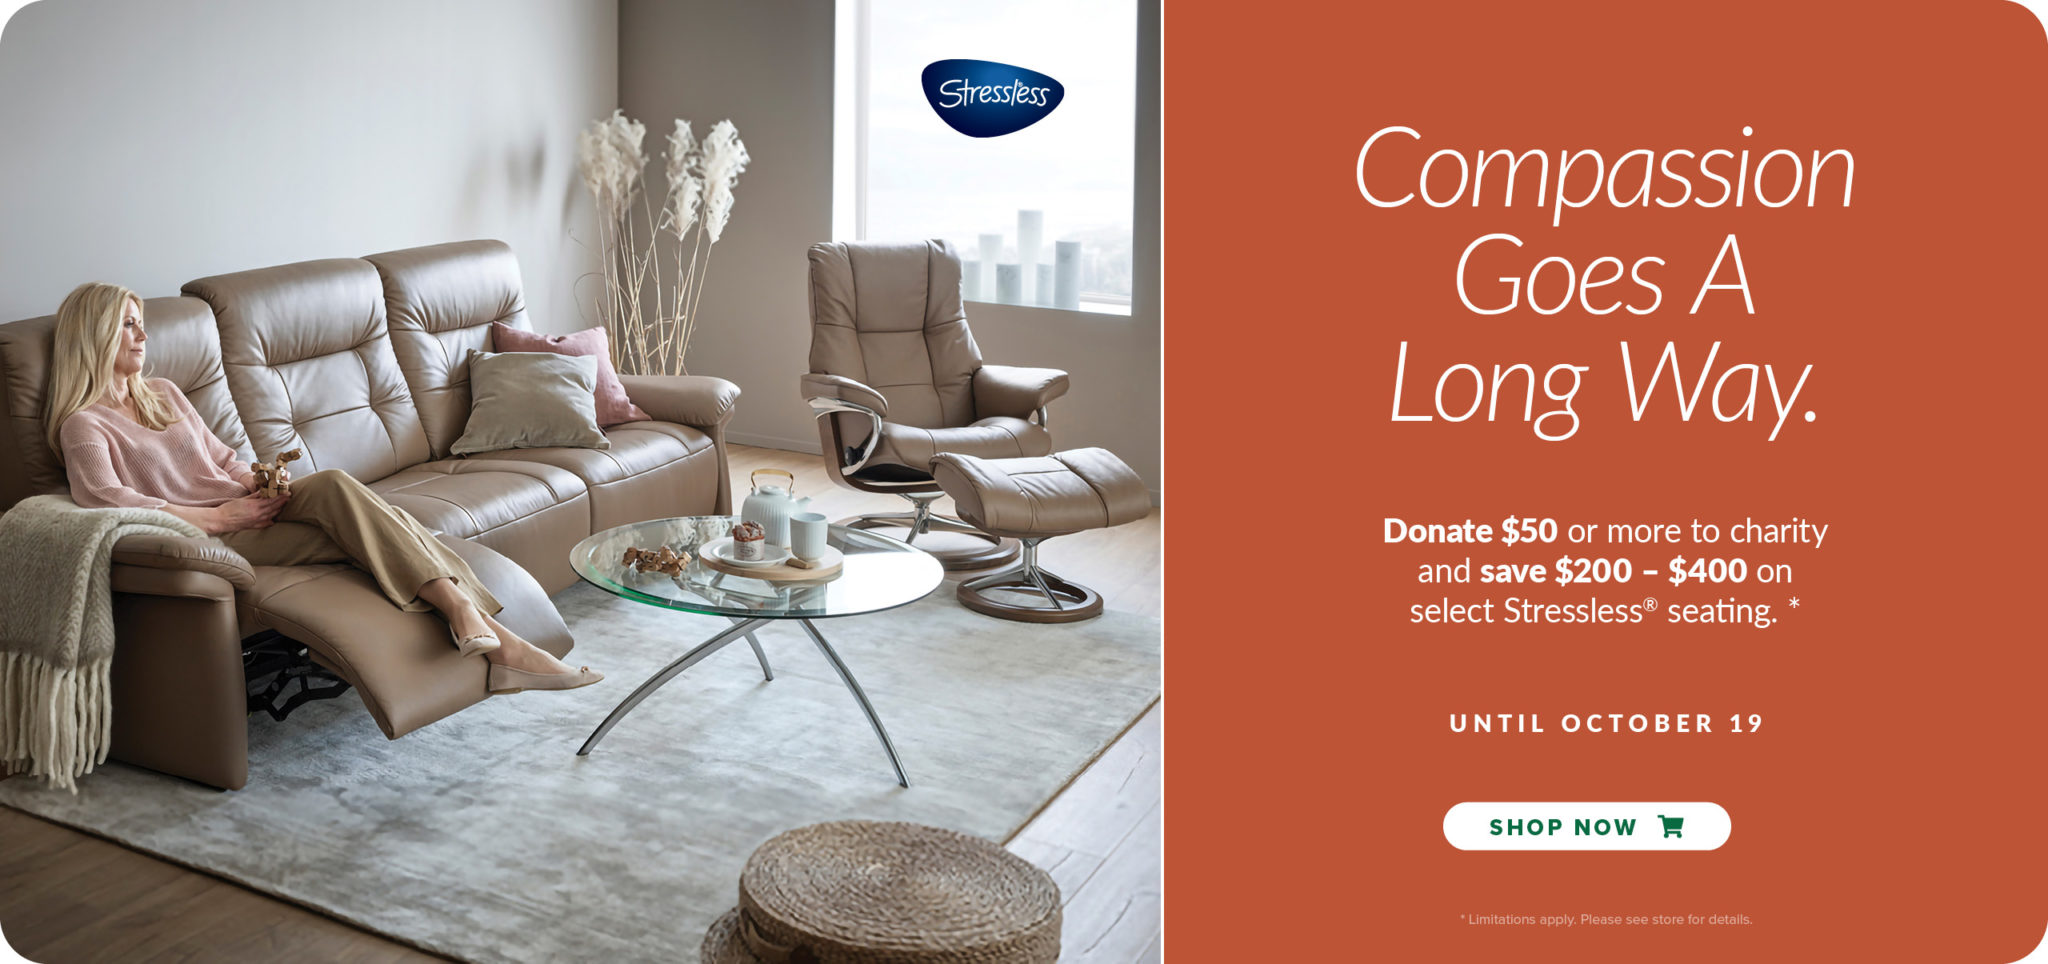 Enjoy modern contemporary home furniture like this ultra-comfortable sofa from Stressless